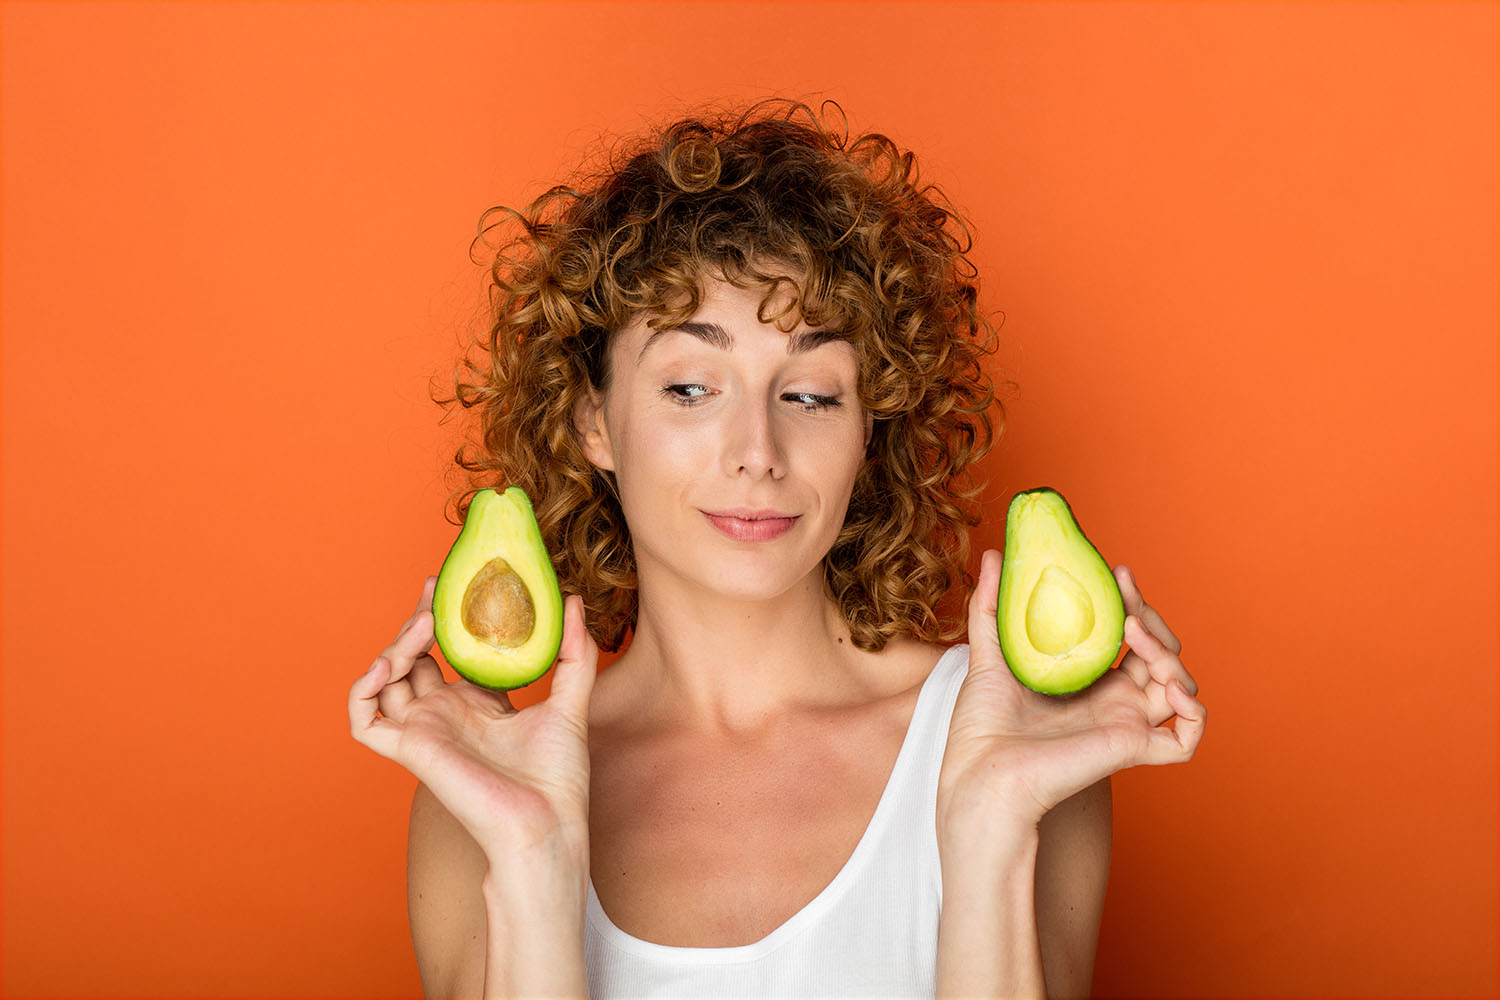 Young curly haired woman holding an avocado in front of orange background